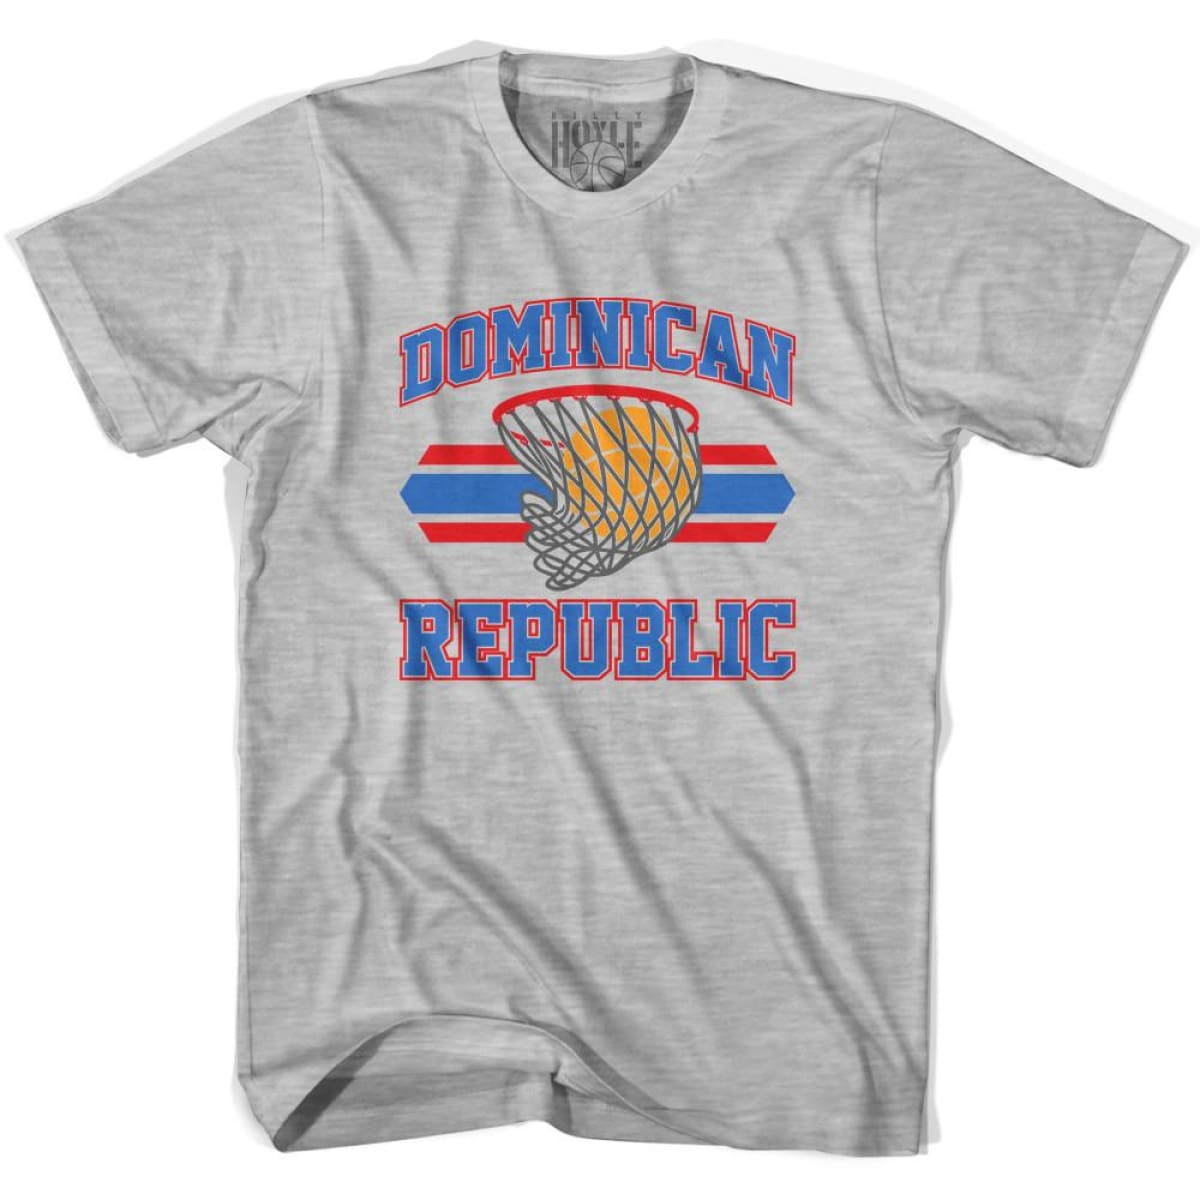 Dominican Republic 90s Basketball T-shirts - Grey Heather / Youth X-Small - Basketball T-shirt